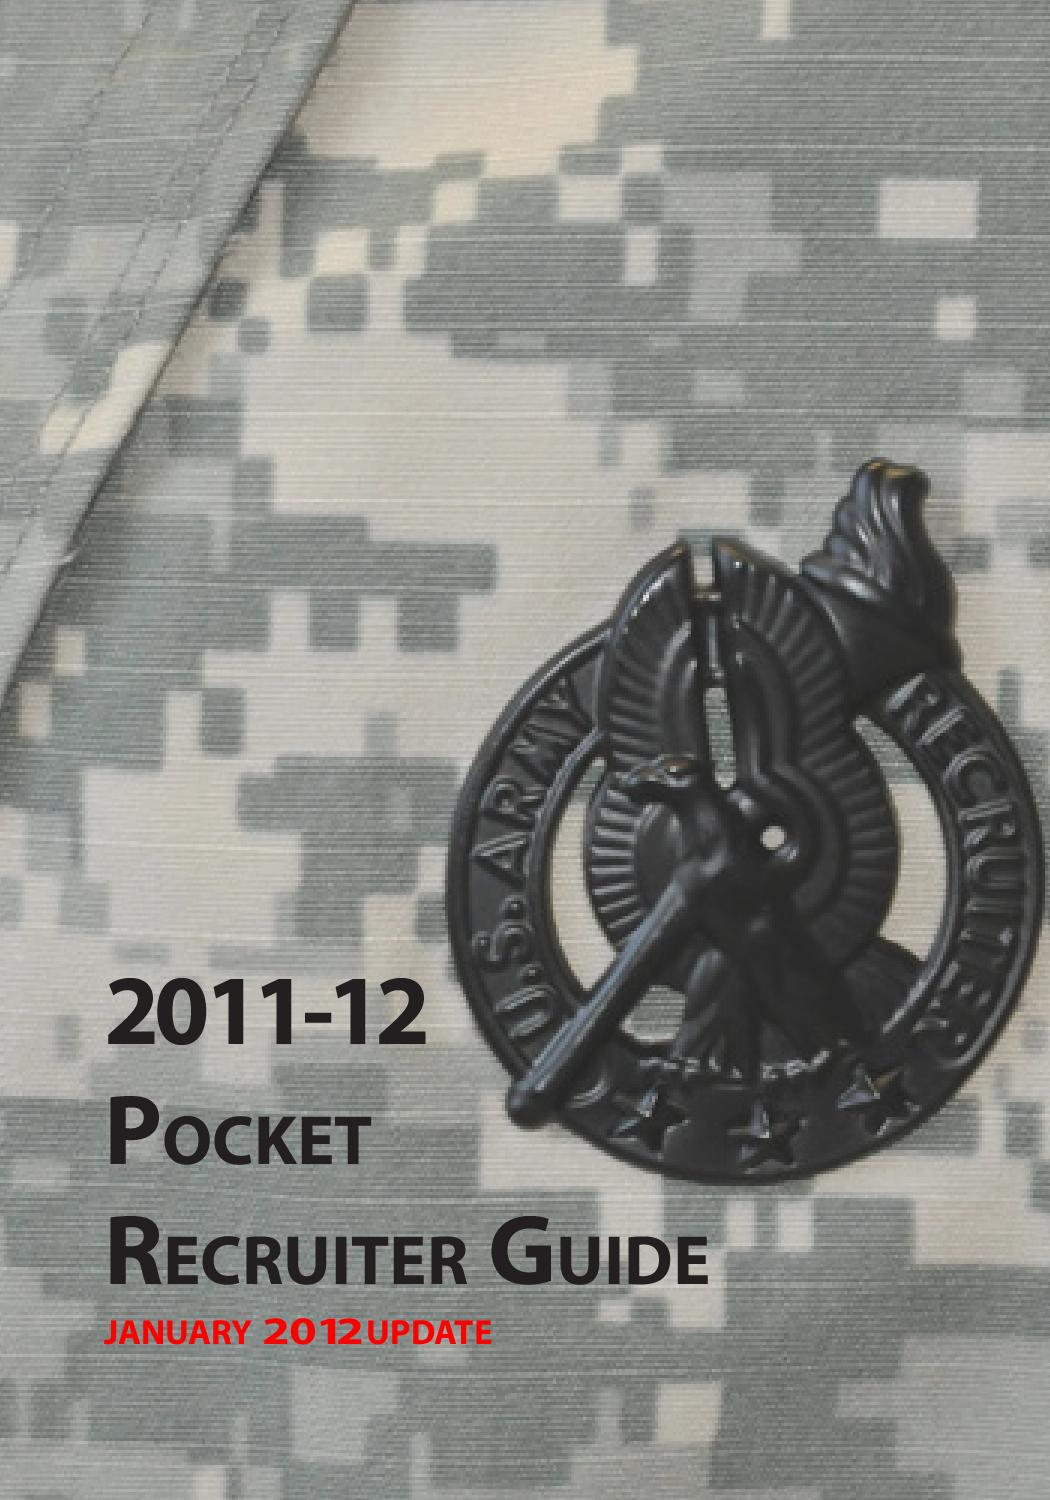 Pocket Recruiter Guide 2011-2012 by US Army Recruiting Command - issuu